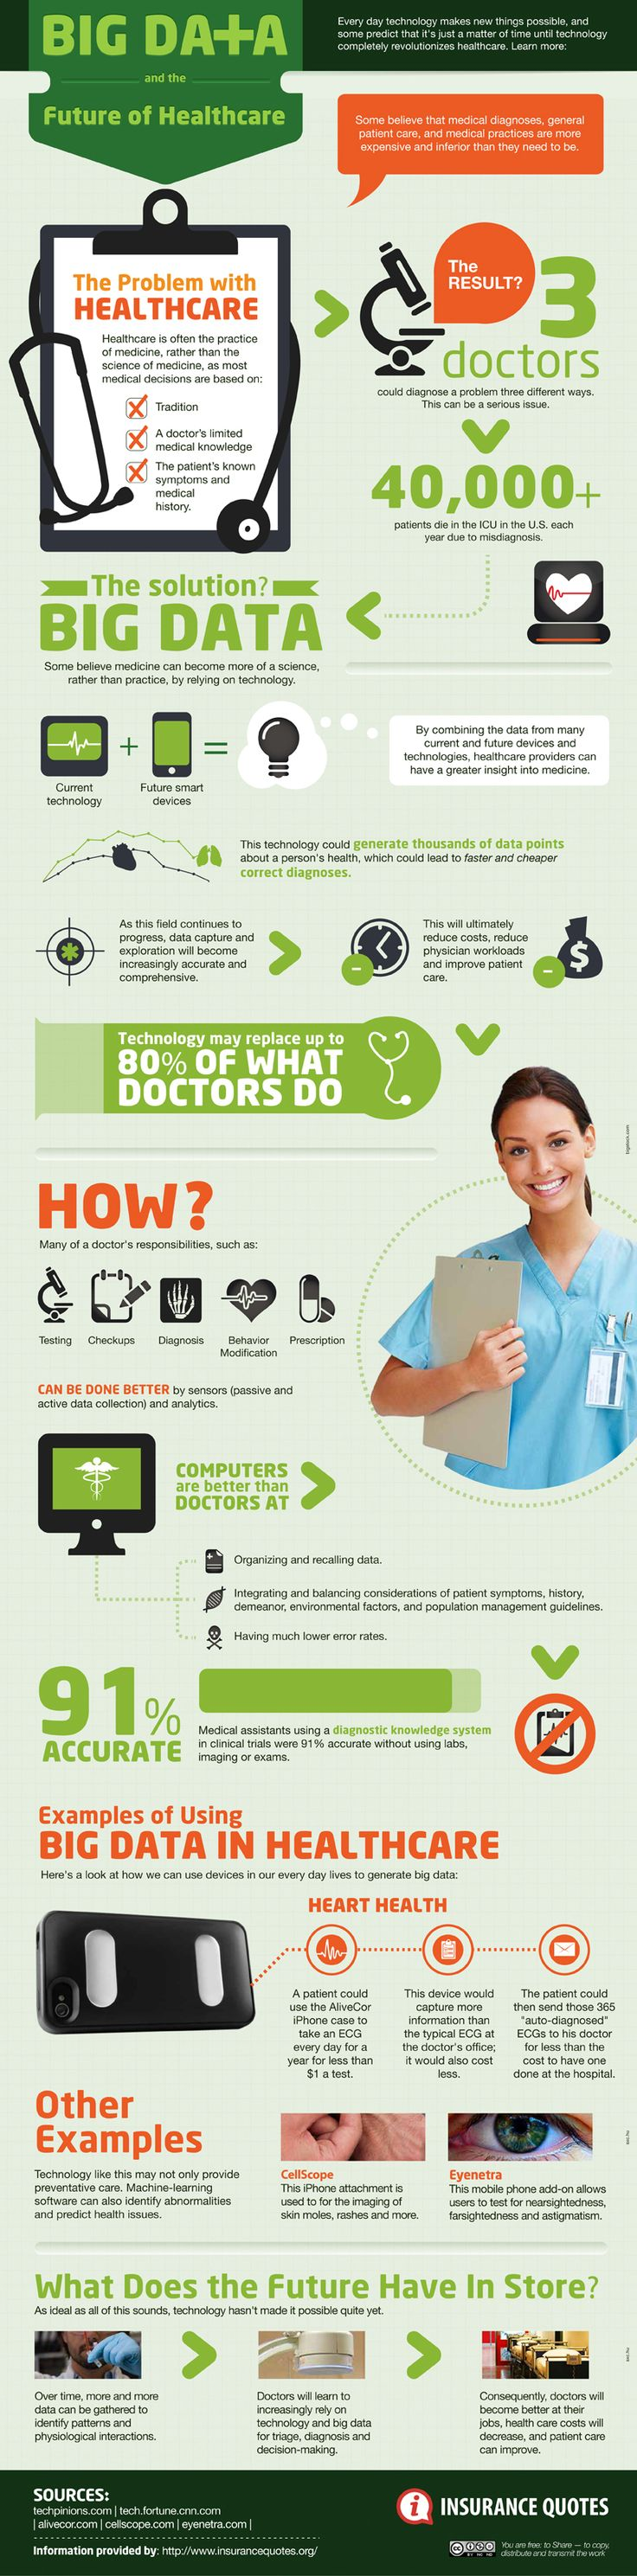 Big Data and the future of healthcare #infographic